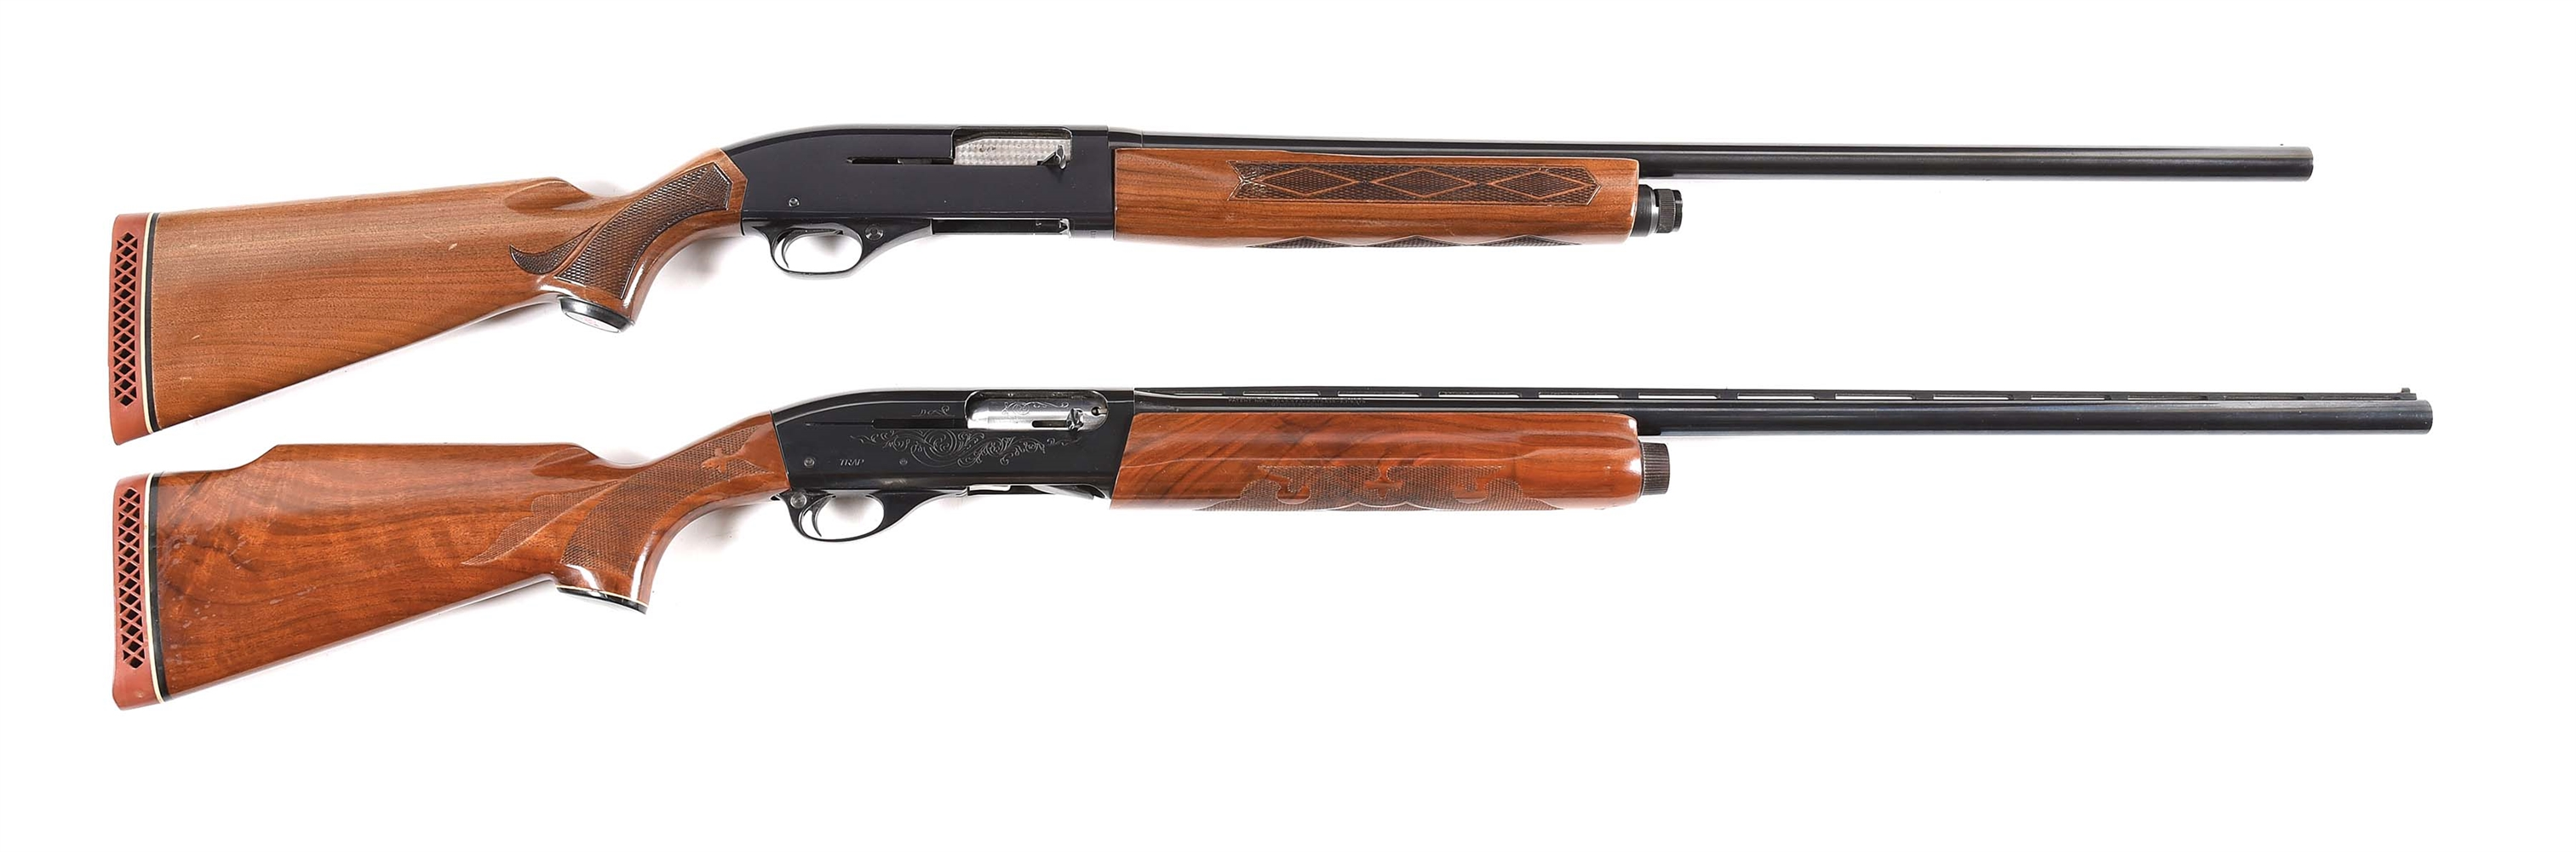 (C) LOT OF 2: WINCHESTER 1400 AND REMINGTON 1100 SEMI AUTOMATIC SHOTGUNS.